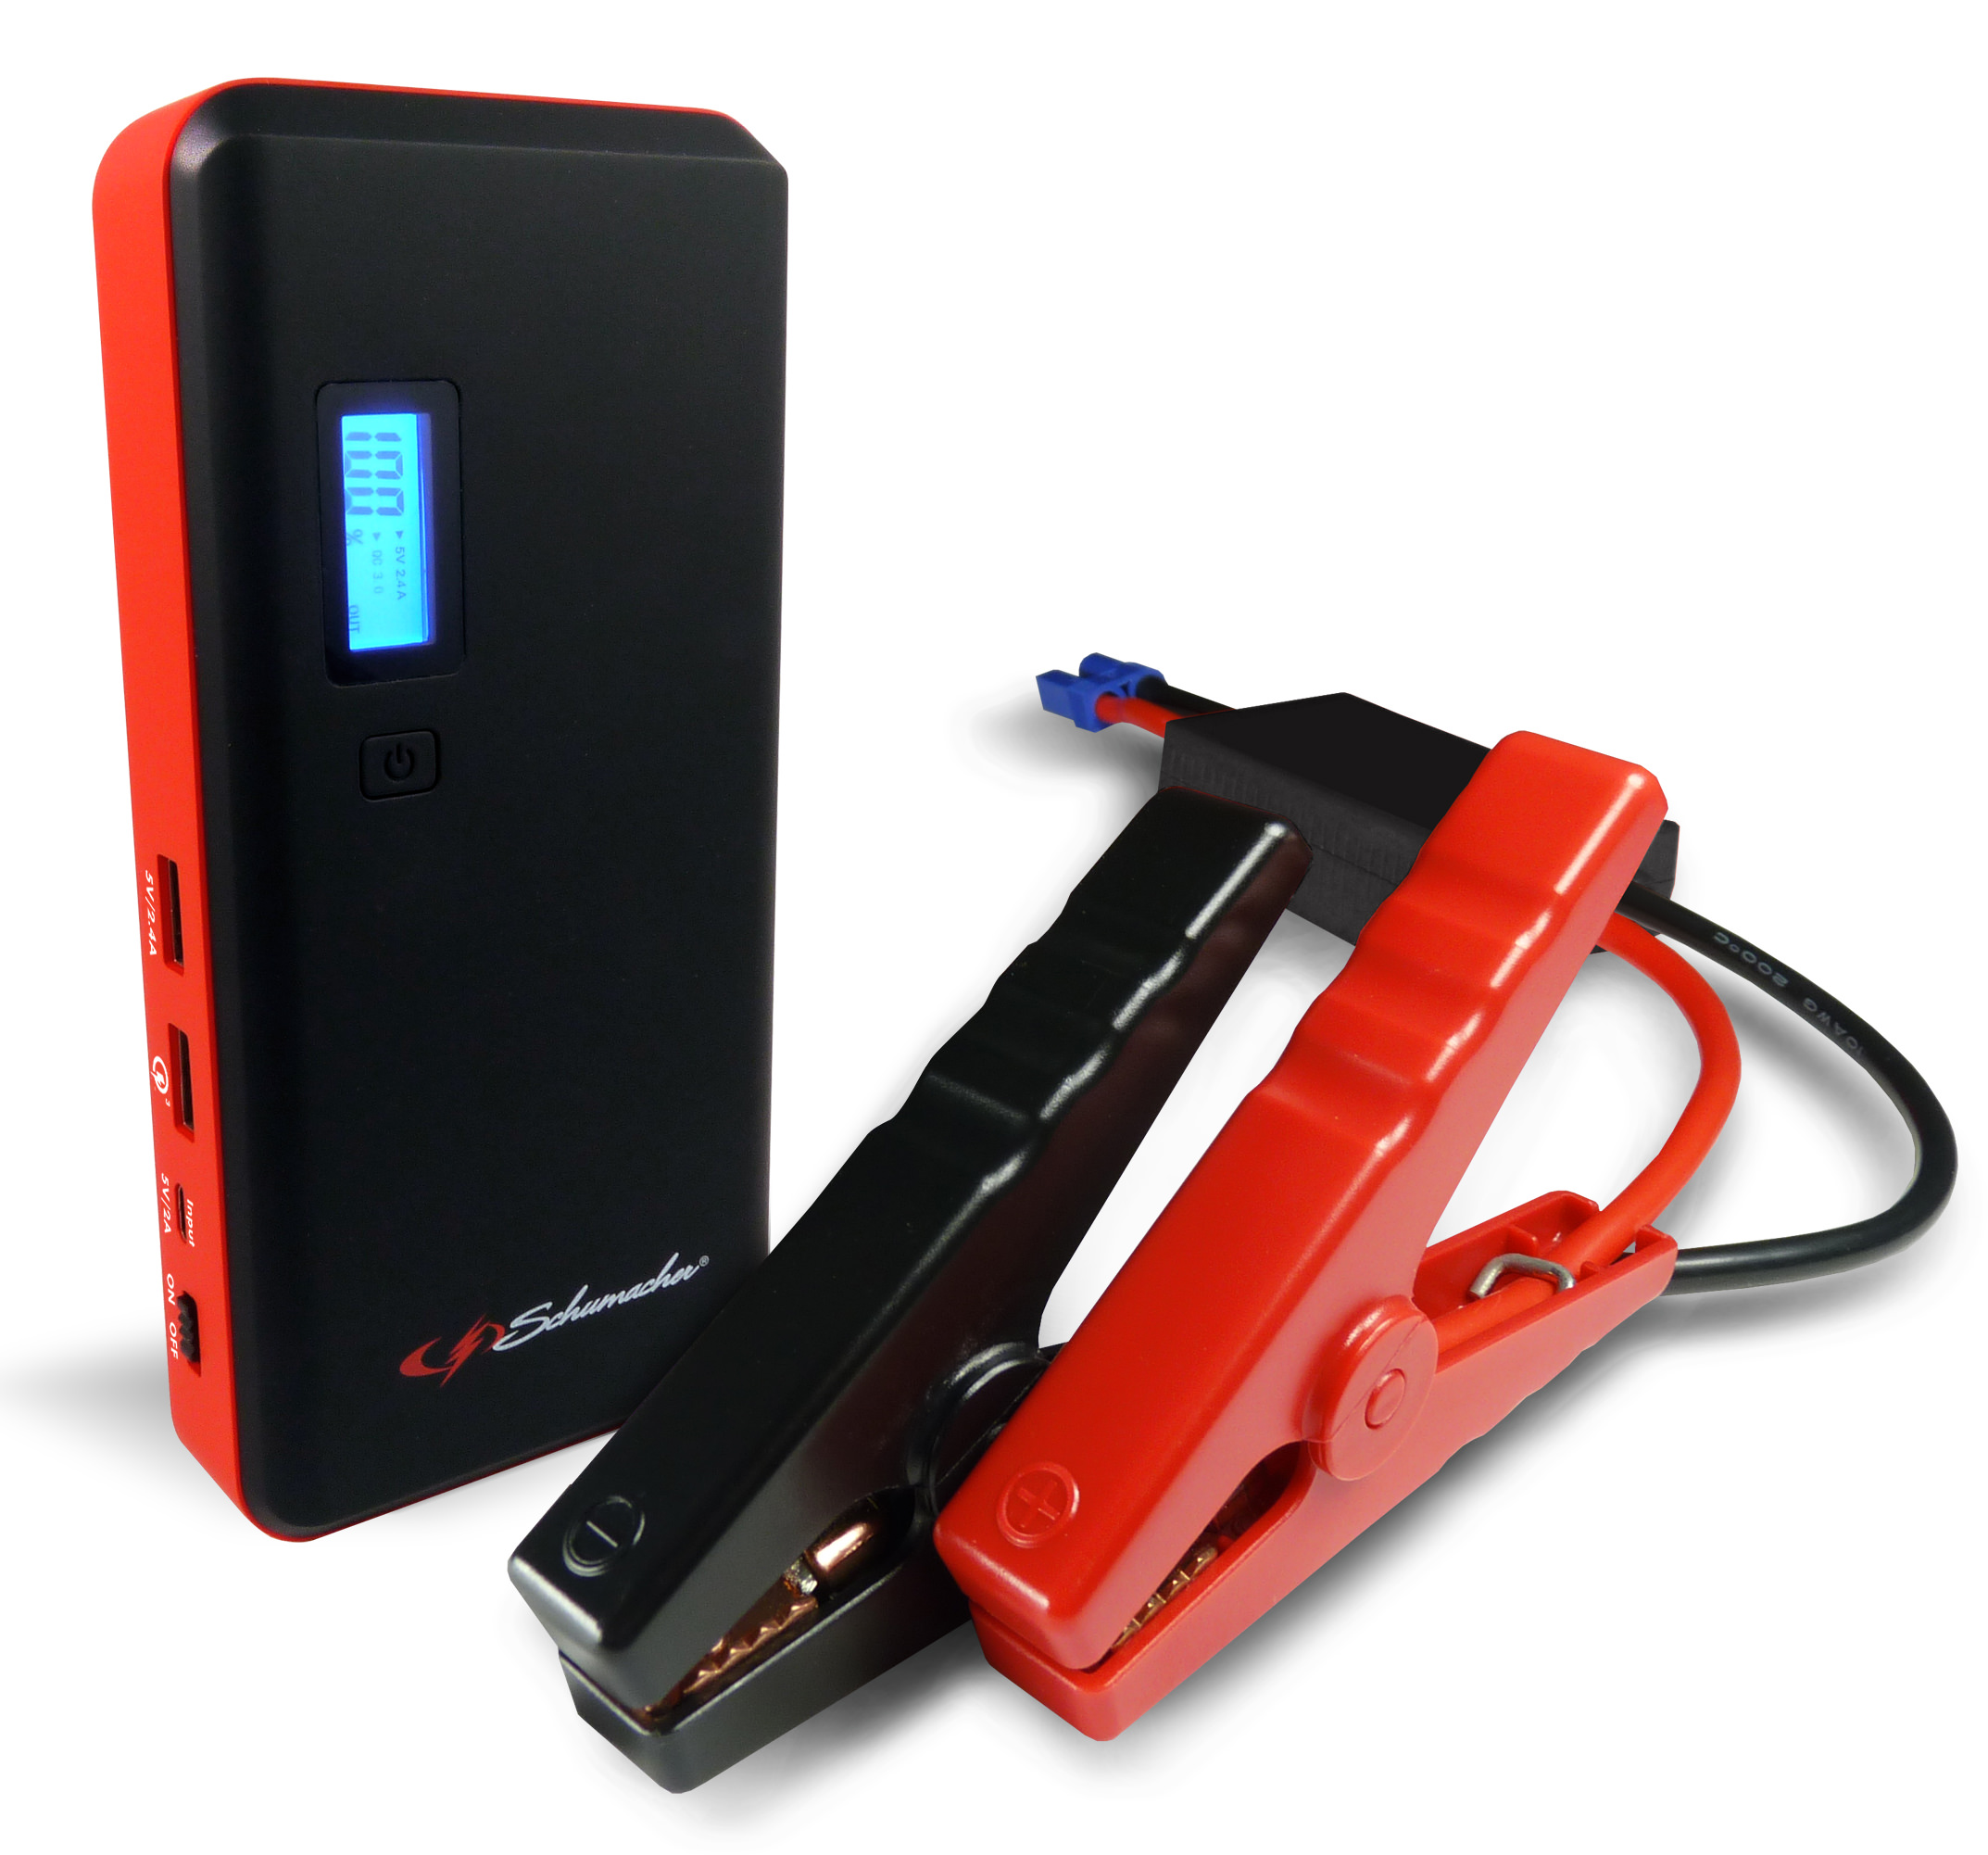 Schumacher 800-Amp Li-Ion Jump Starter with USB Ports and LCD Display by Schumacher